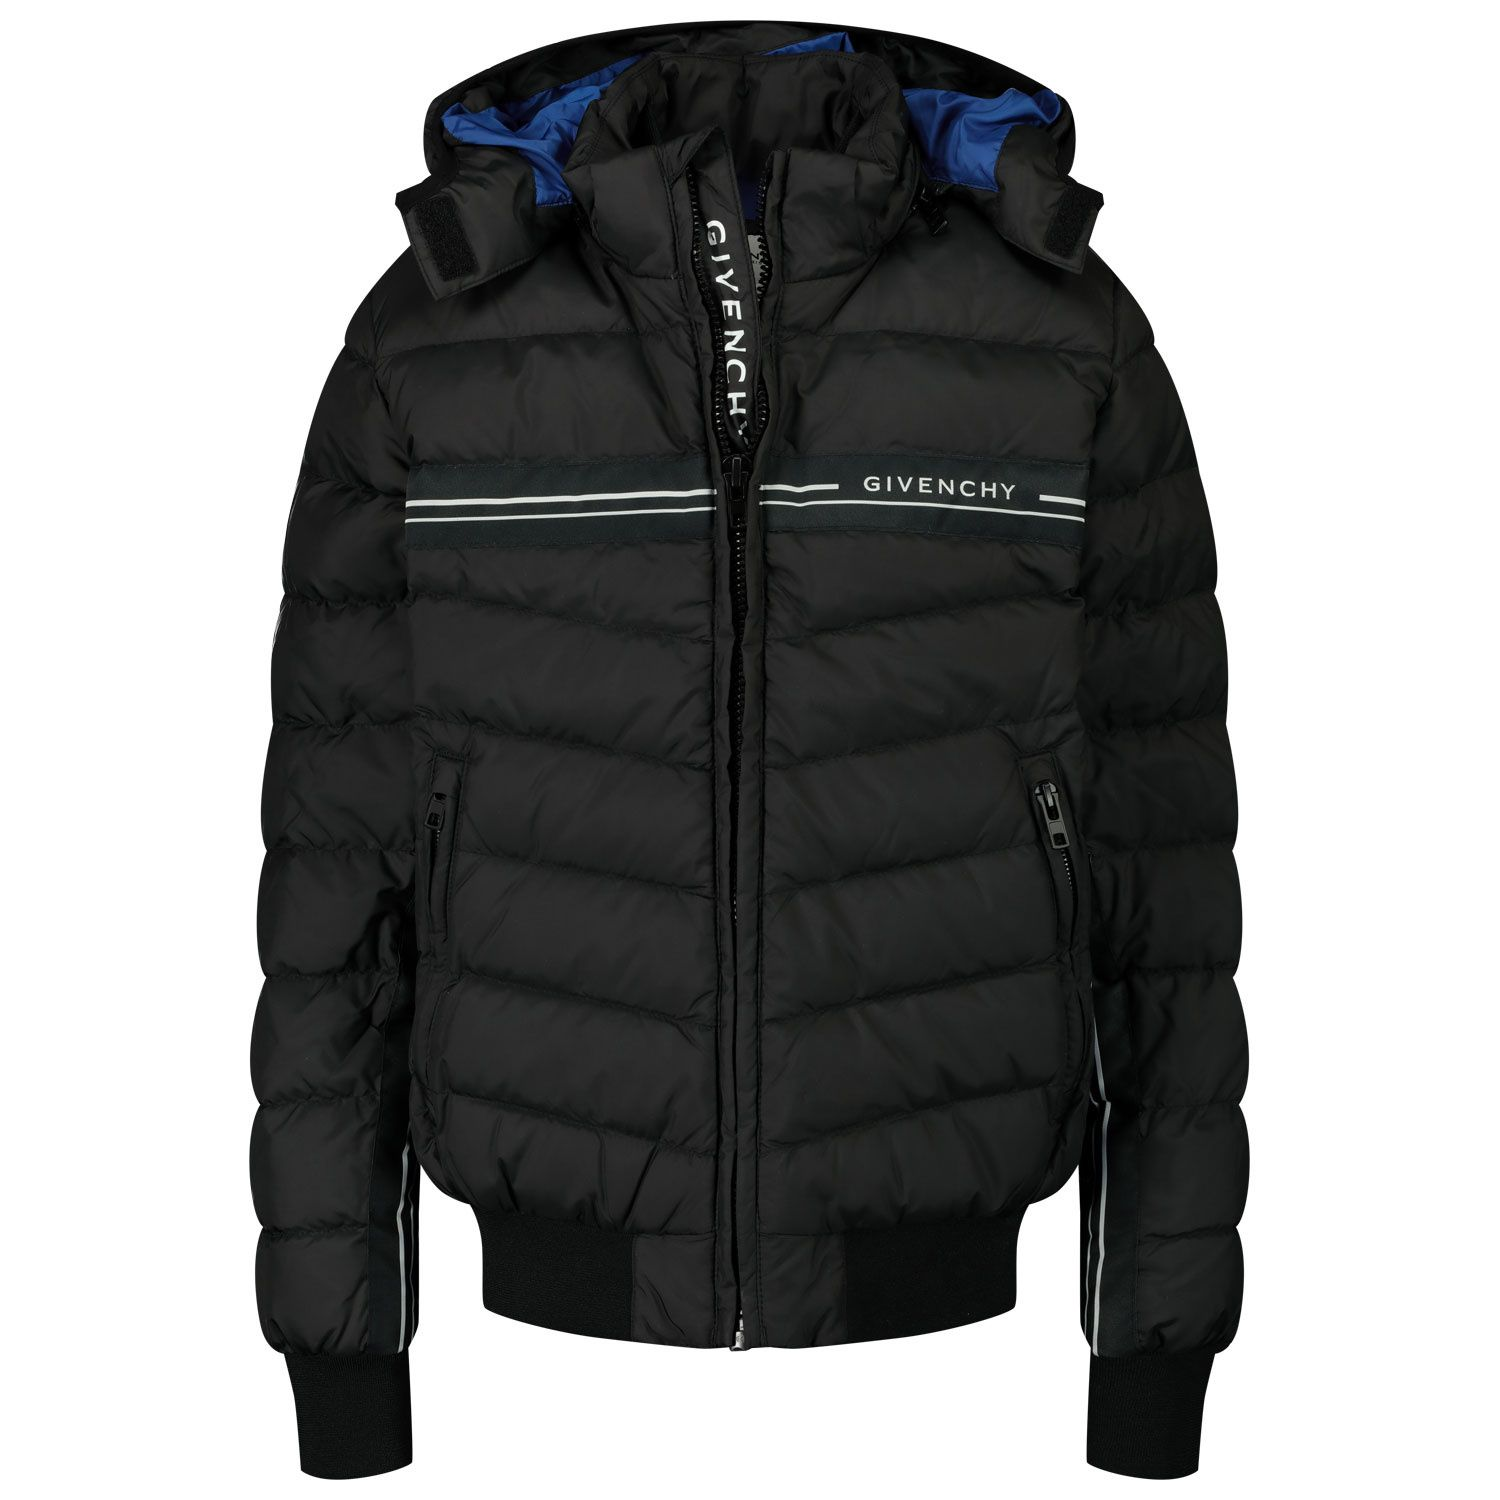 Picture of Givenchy H26061 kids jacket black